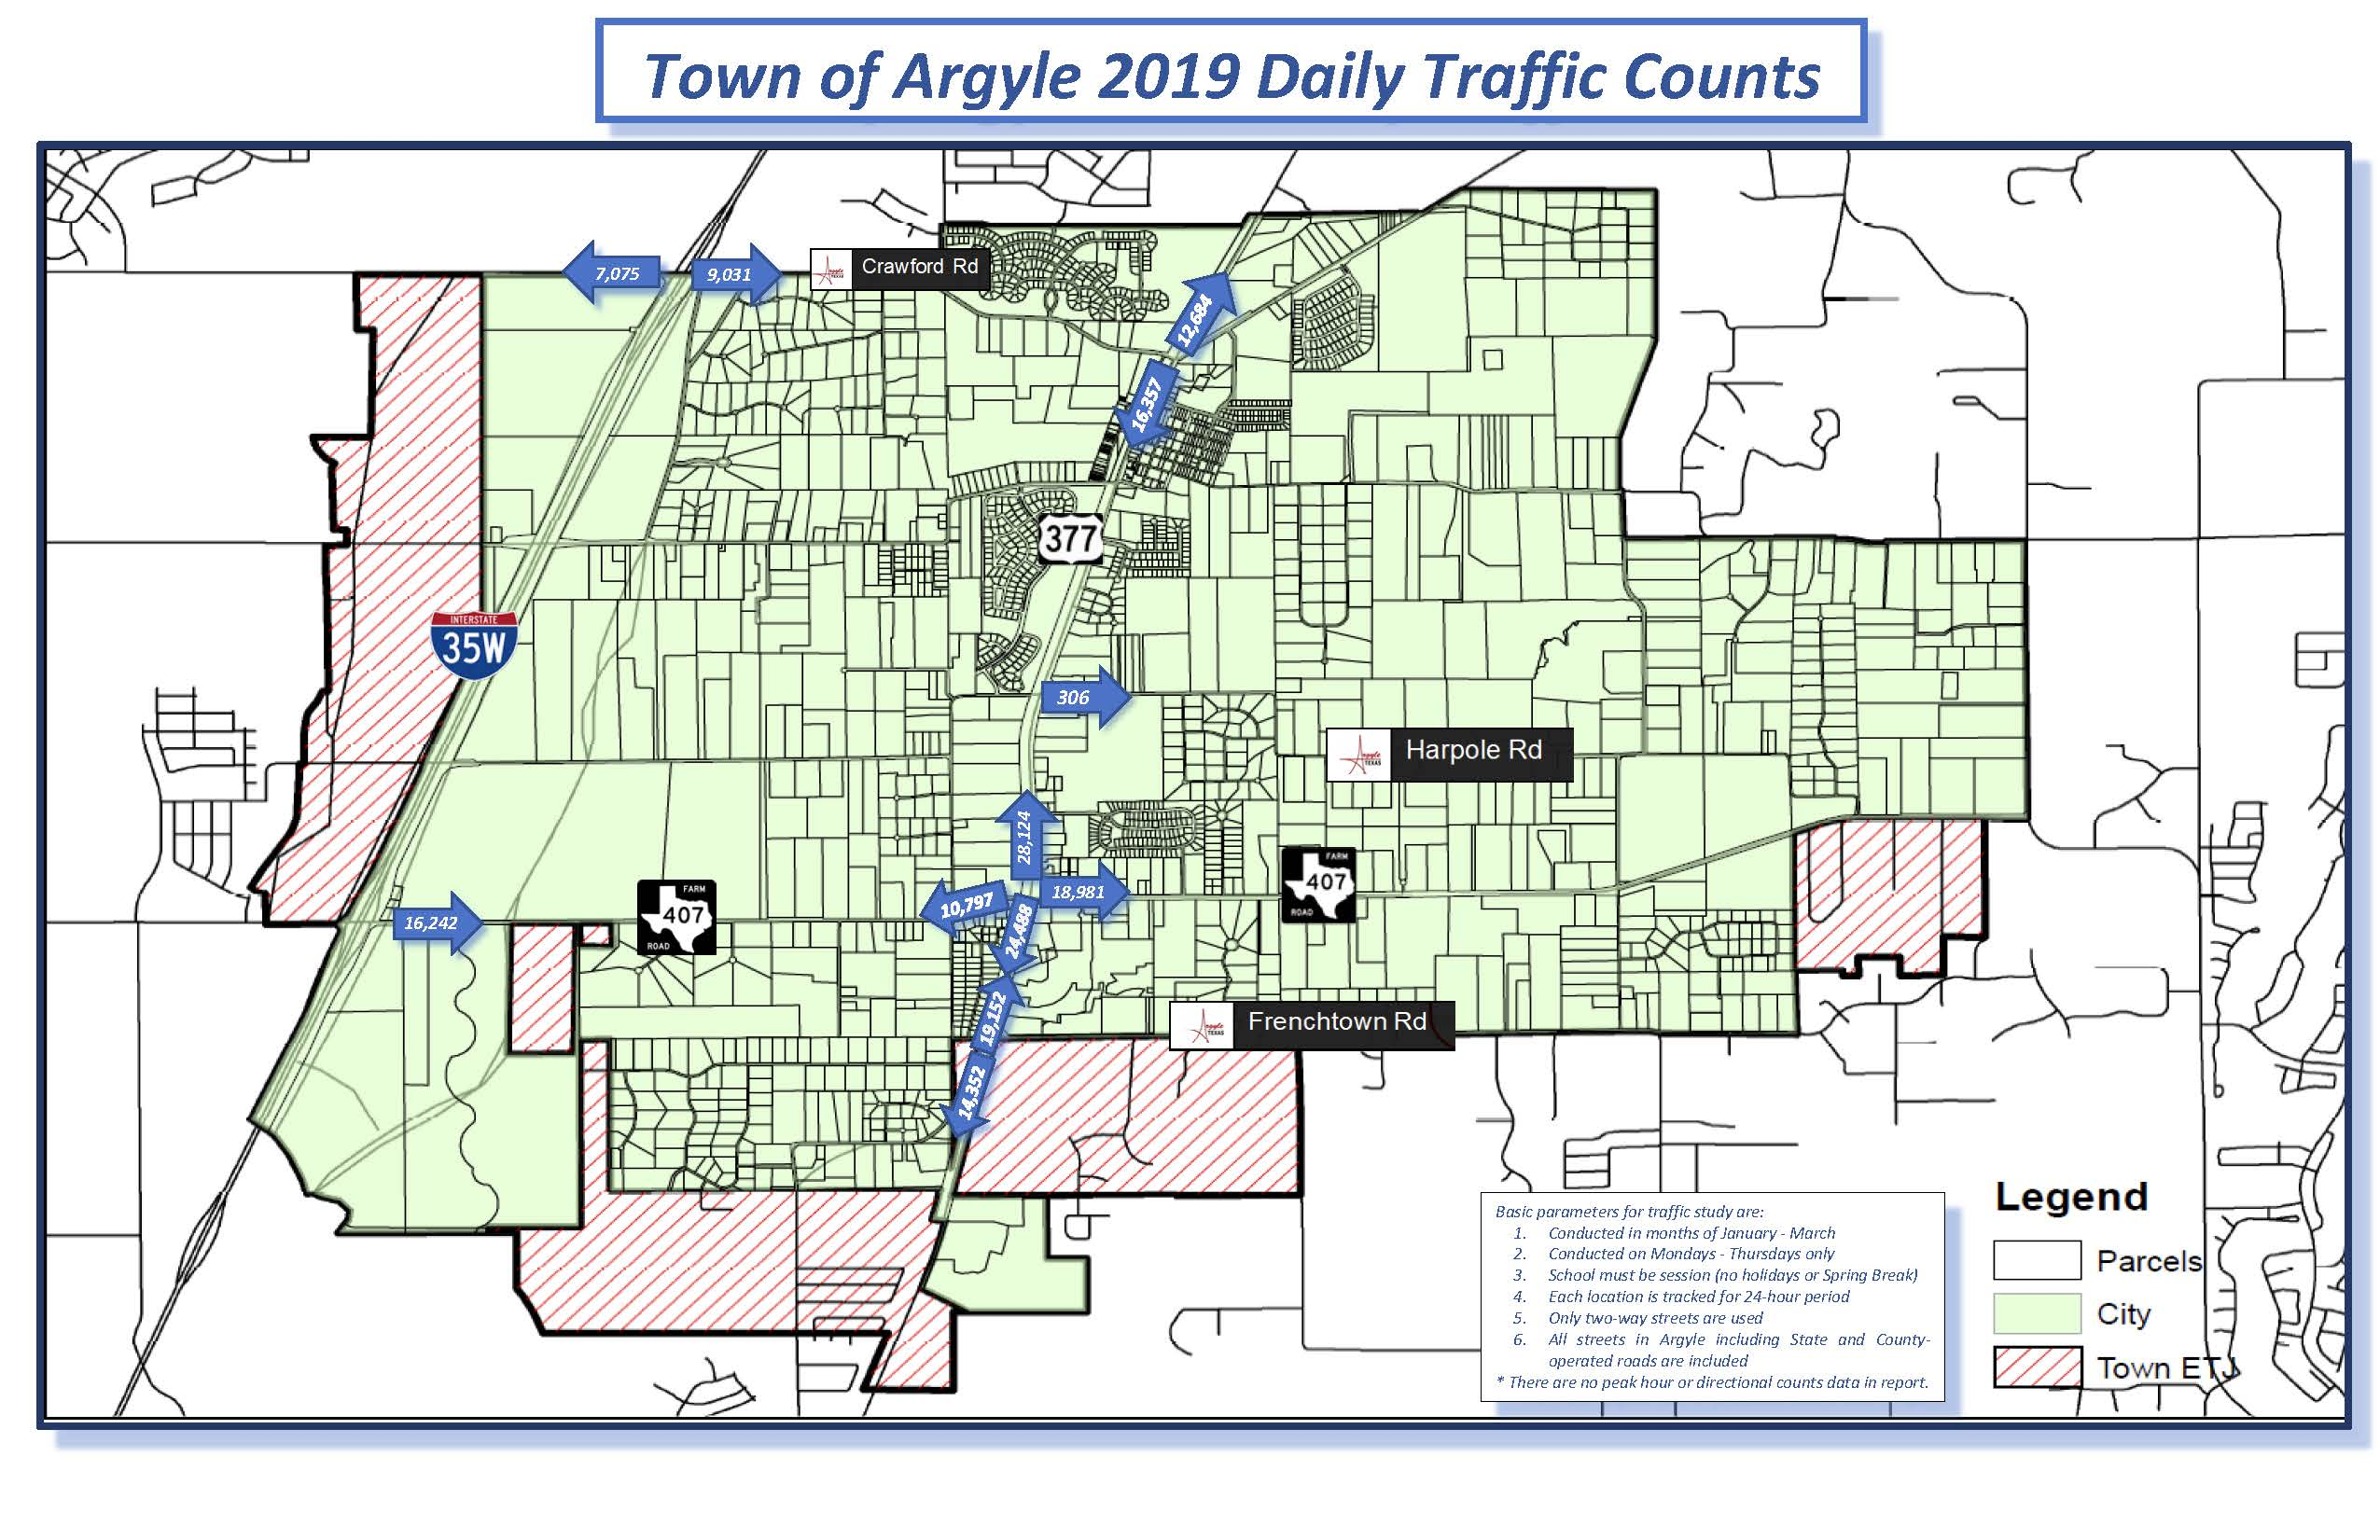 Argyle Traffic Counts Map 9.3.19pdf Opens in new window